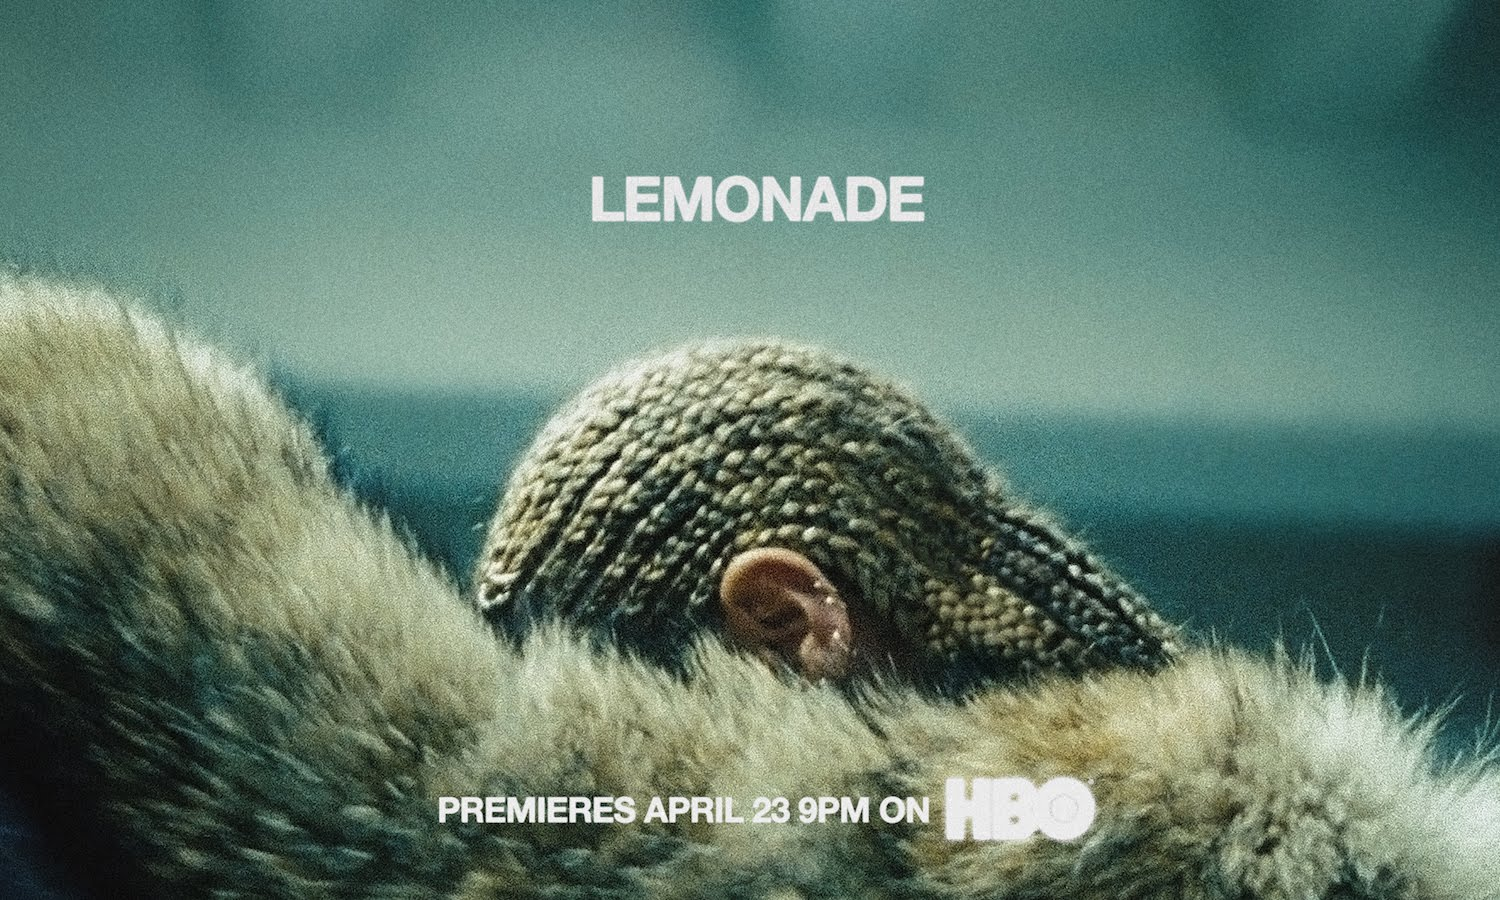 Beyonce Drops A Surprise New Album To Go With Her Short Film